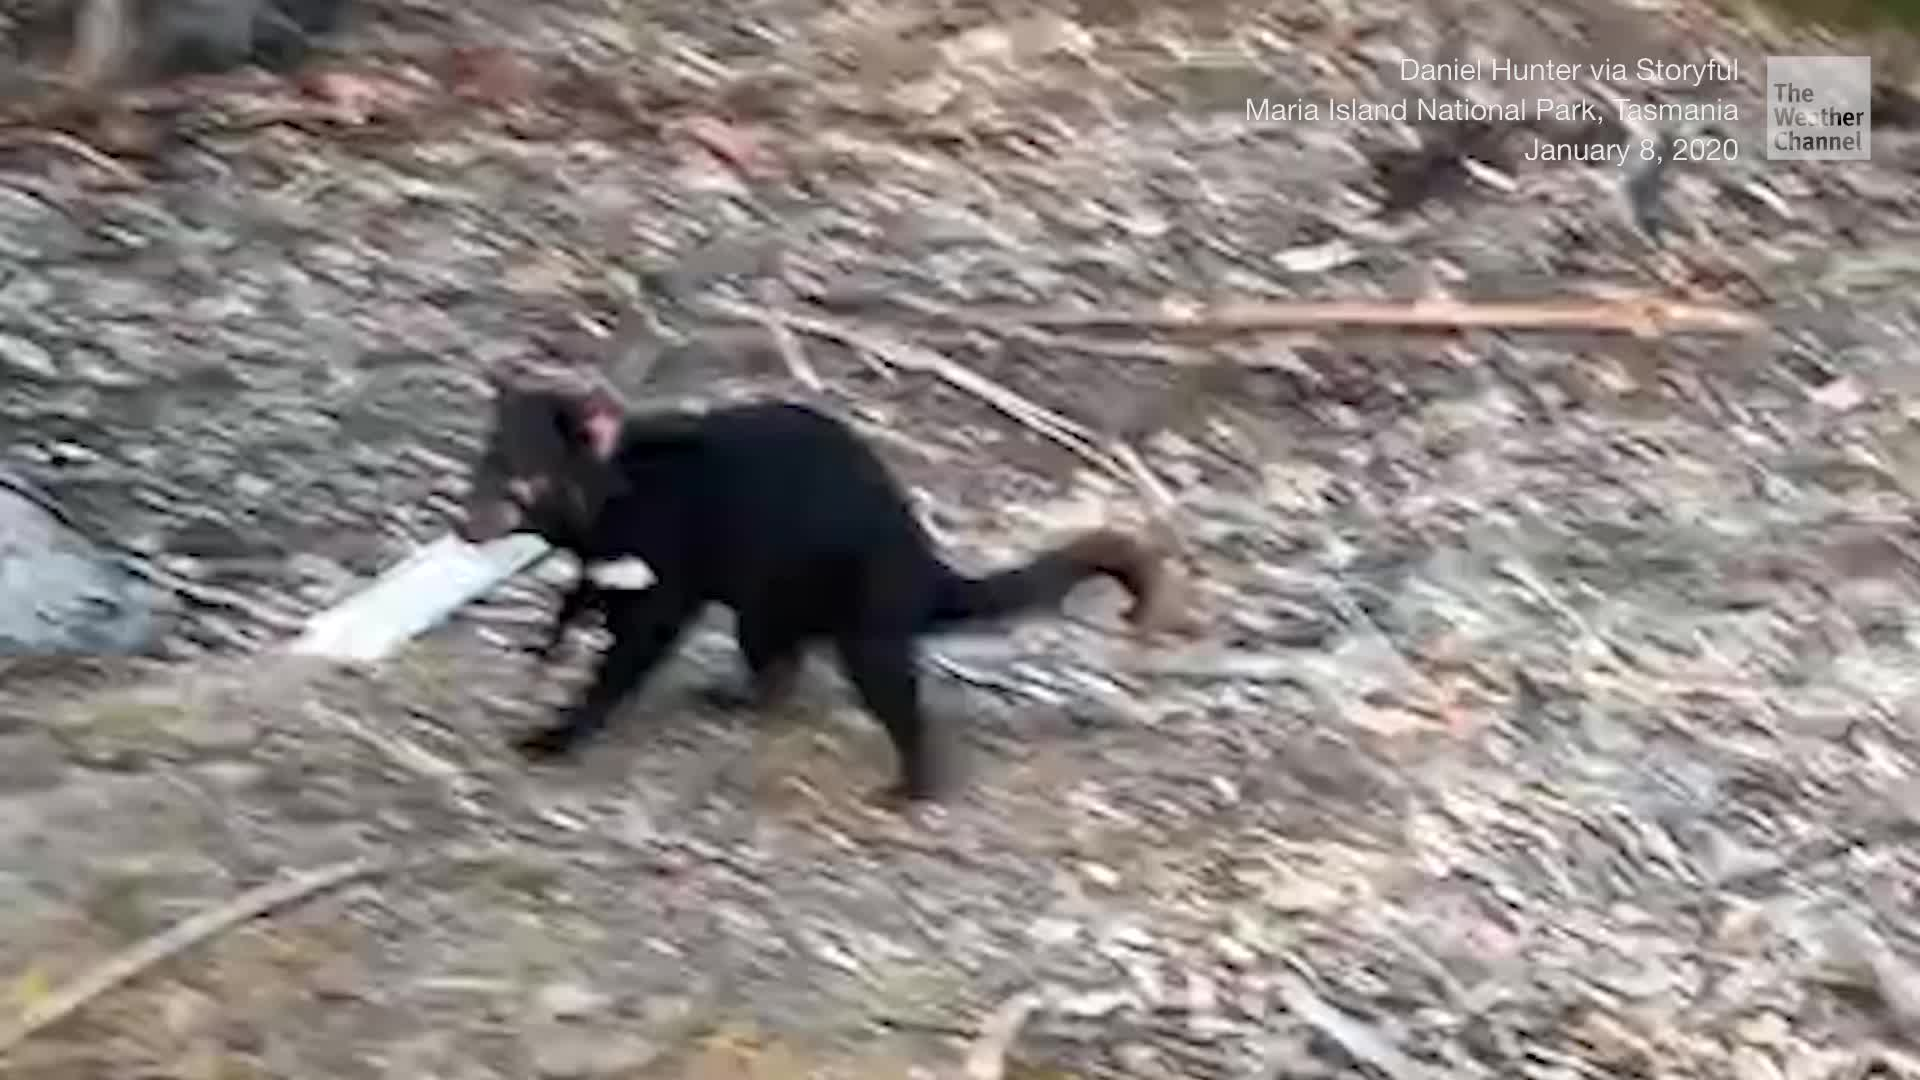 This mischievous Tasmanian devil might have a sweet tooth.